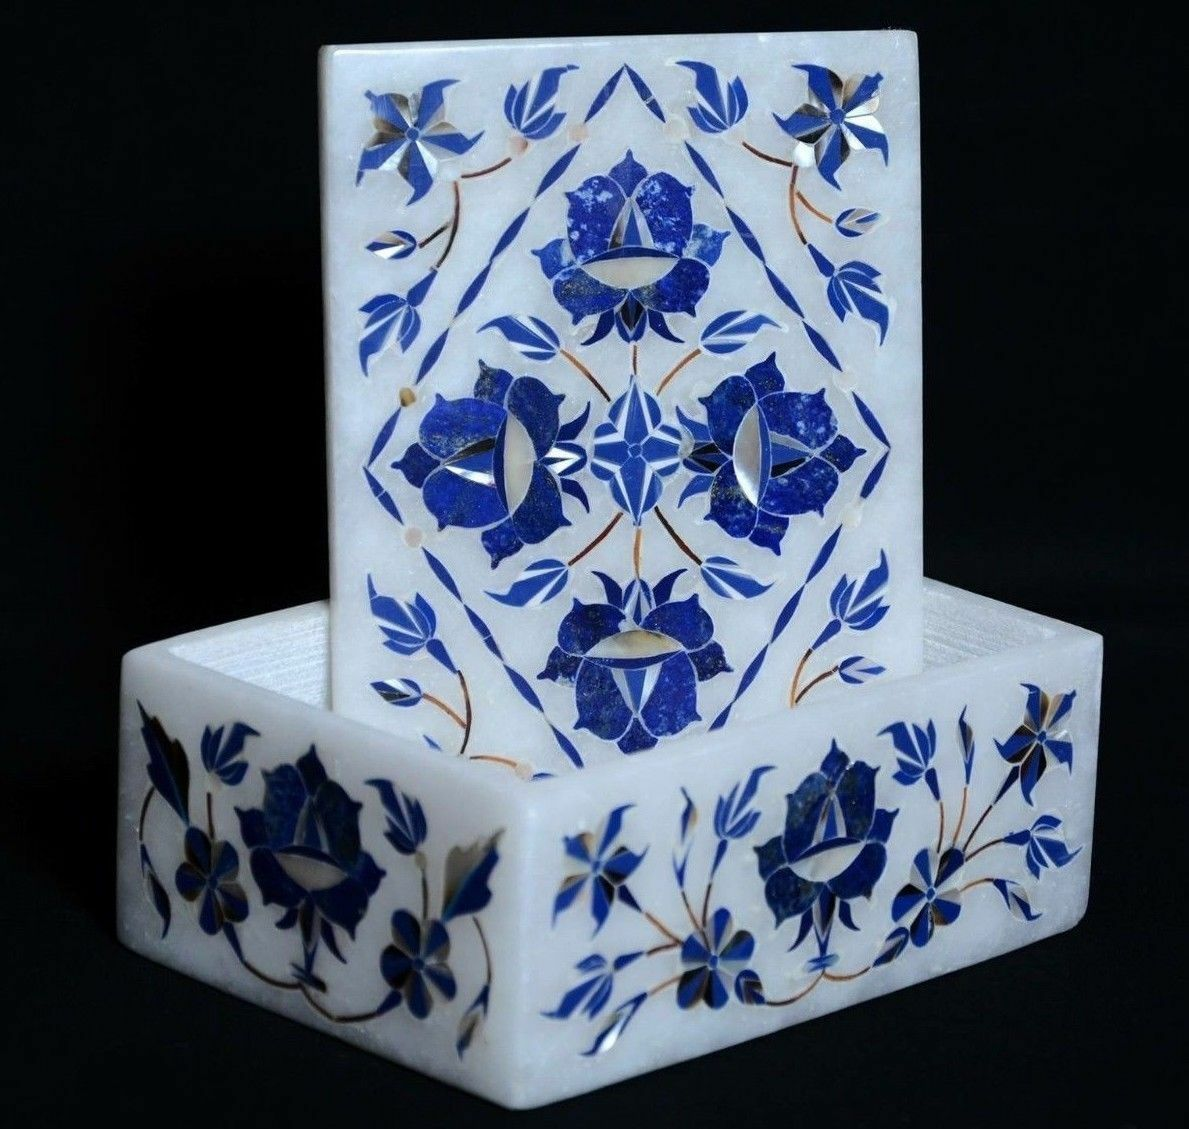 Marble jewelry ring Box semi precious stone floral Inlay Home room decors